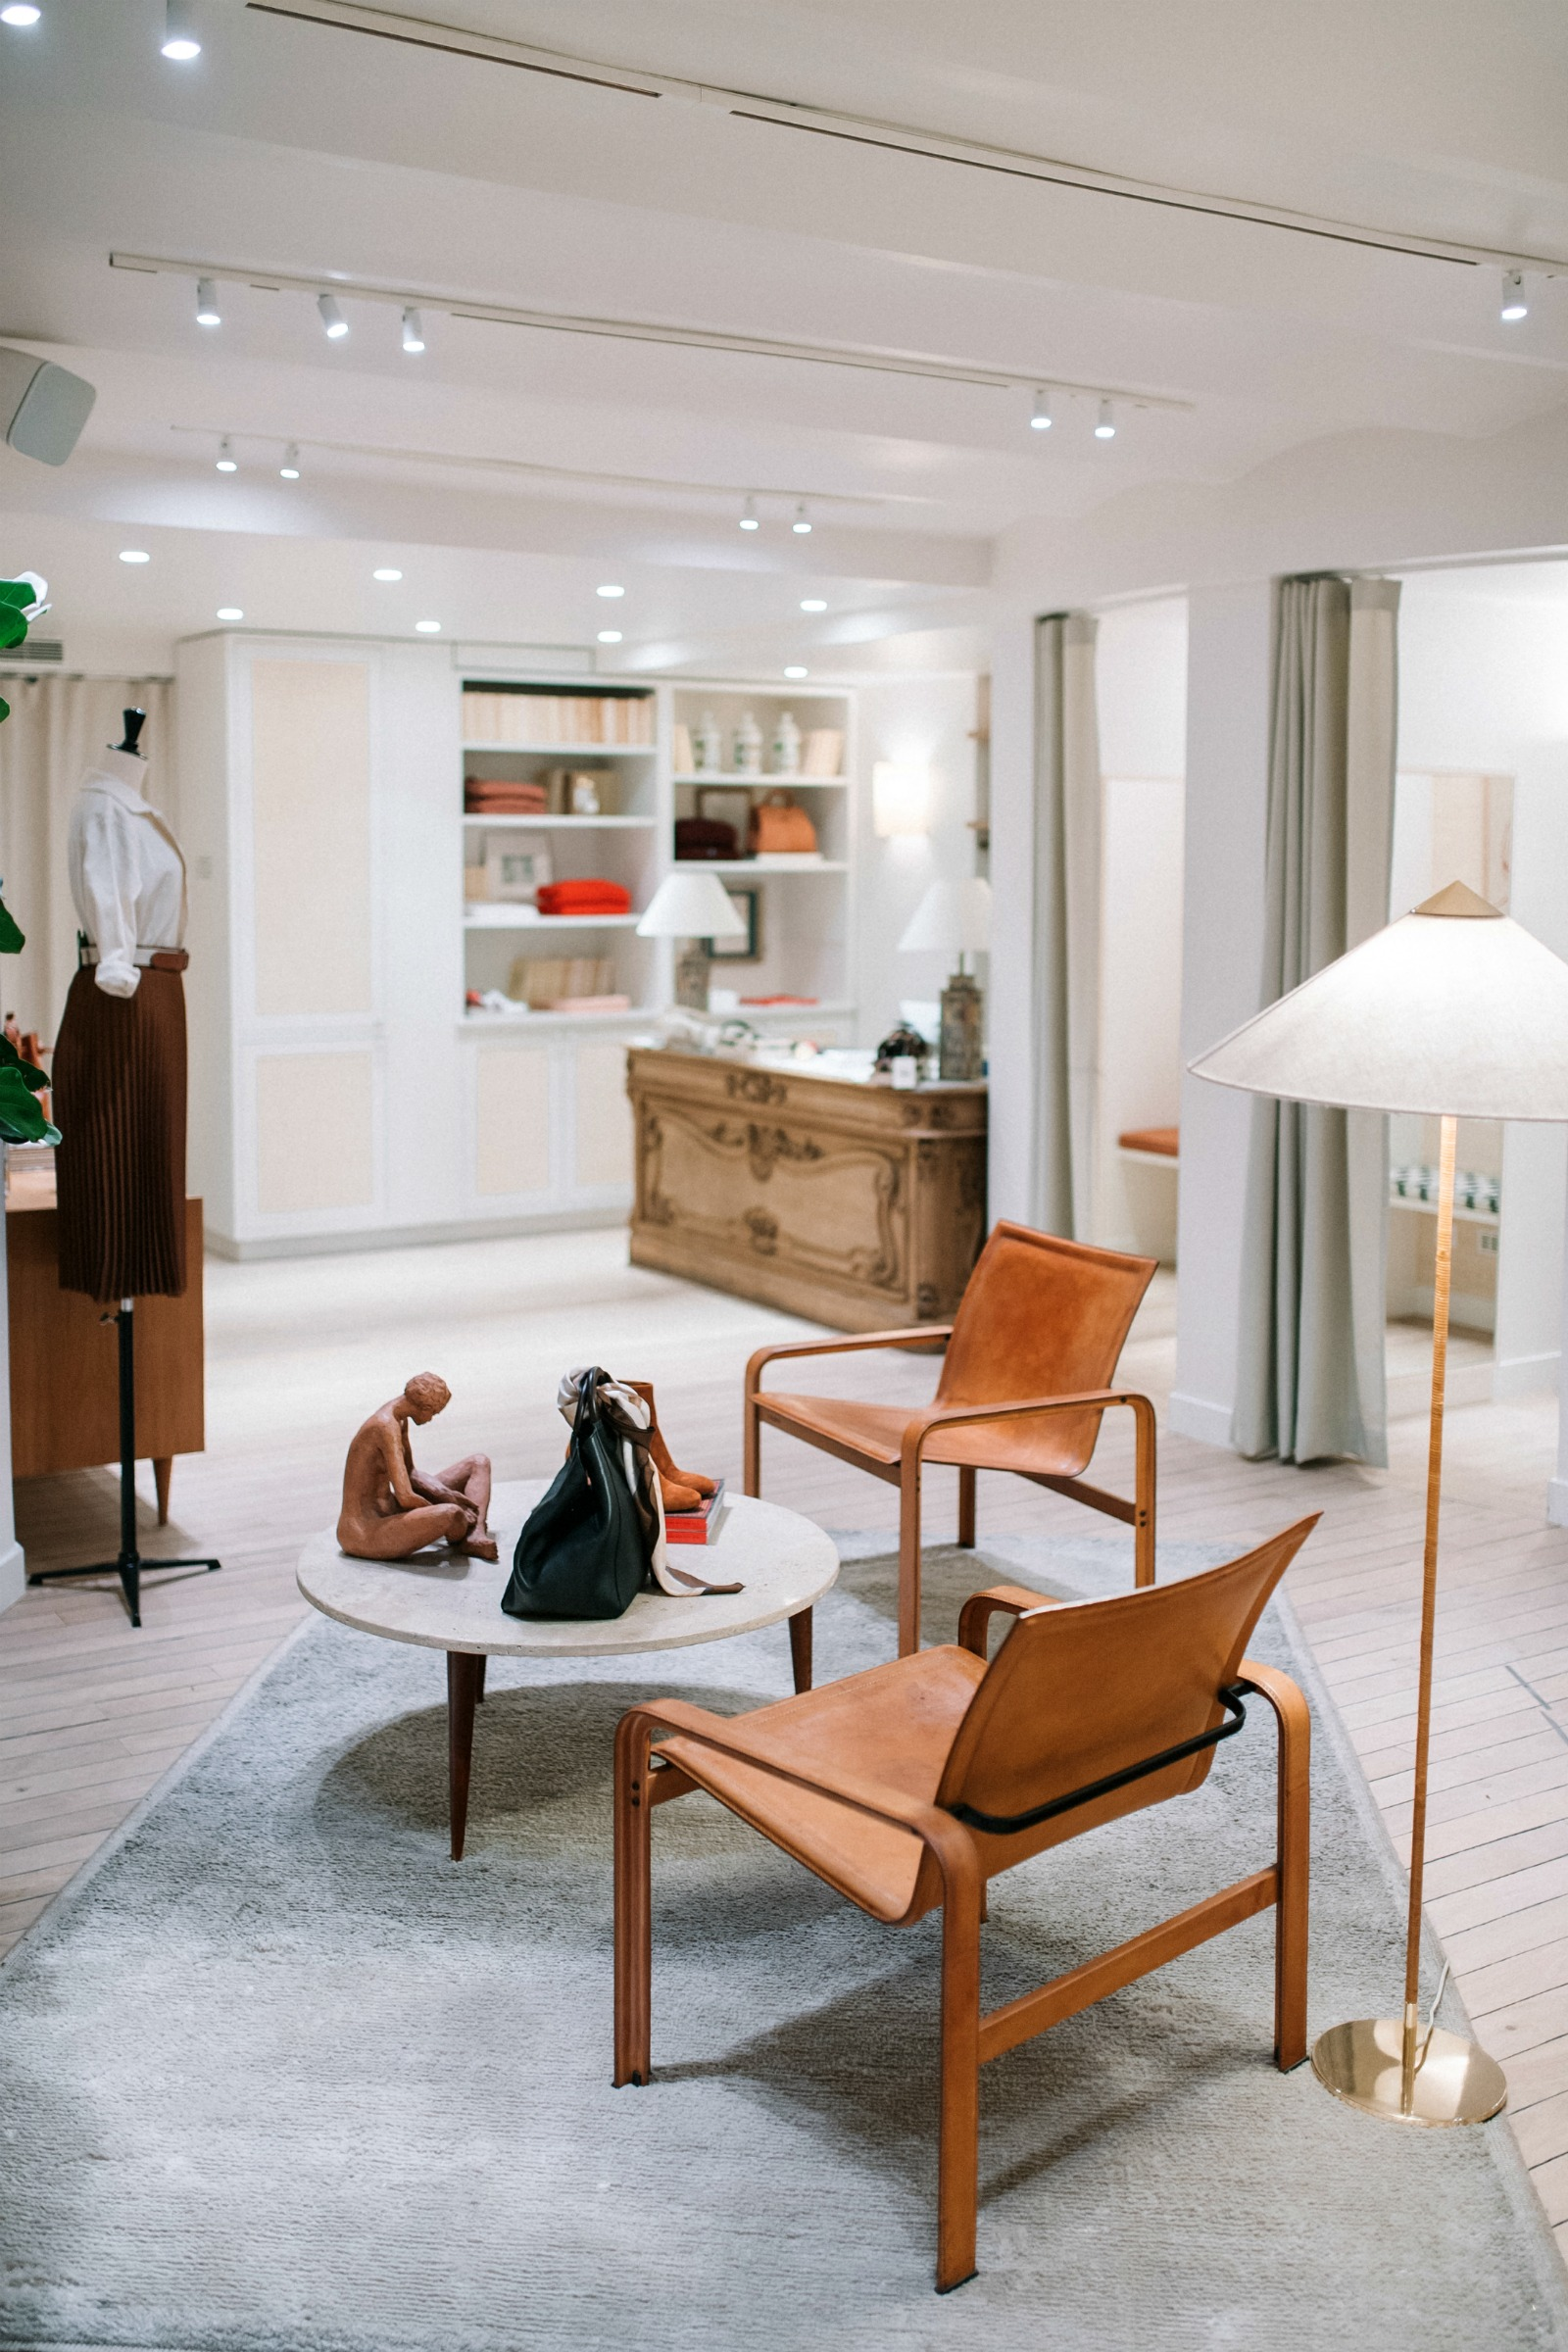 Inside Le Grand Appartement Sezane I wit & whimsy